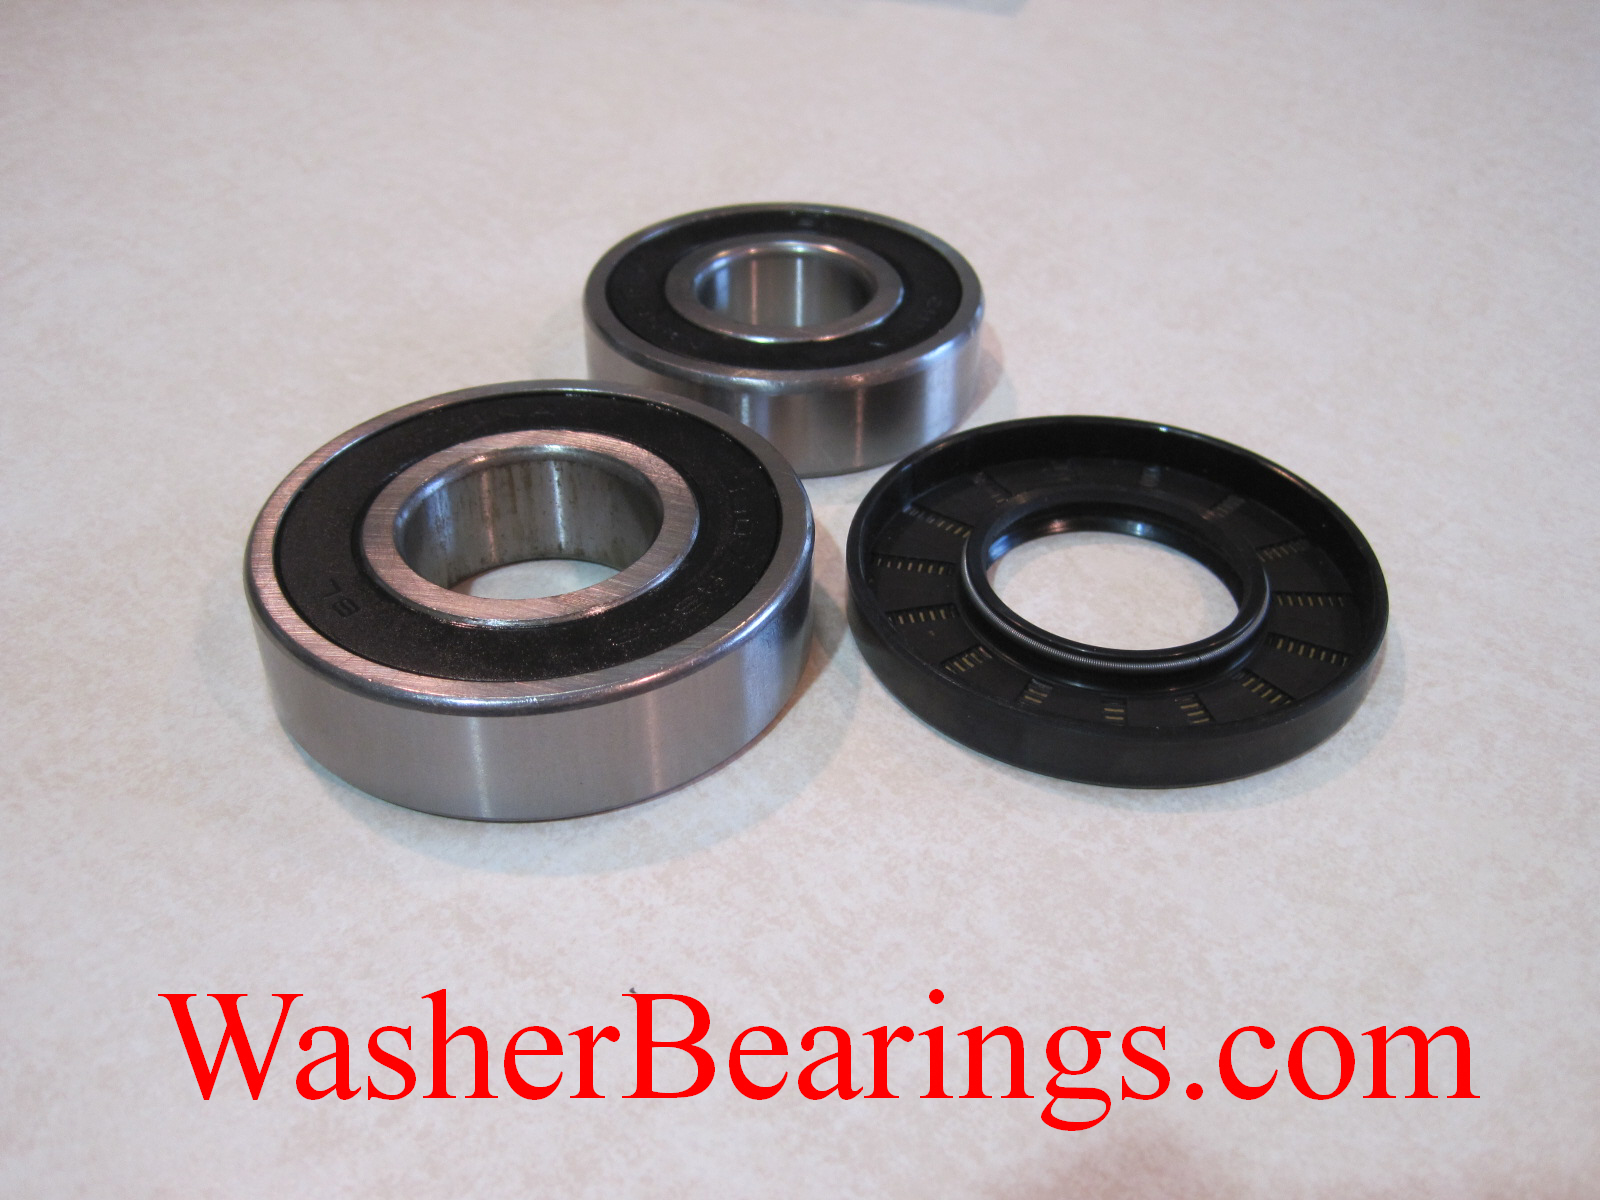 Ghw9150pw0 Bearing Replacement Maytag Neptune Washer Repair